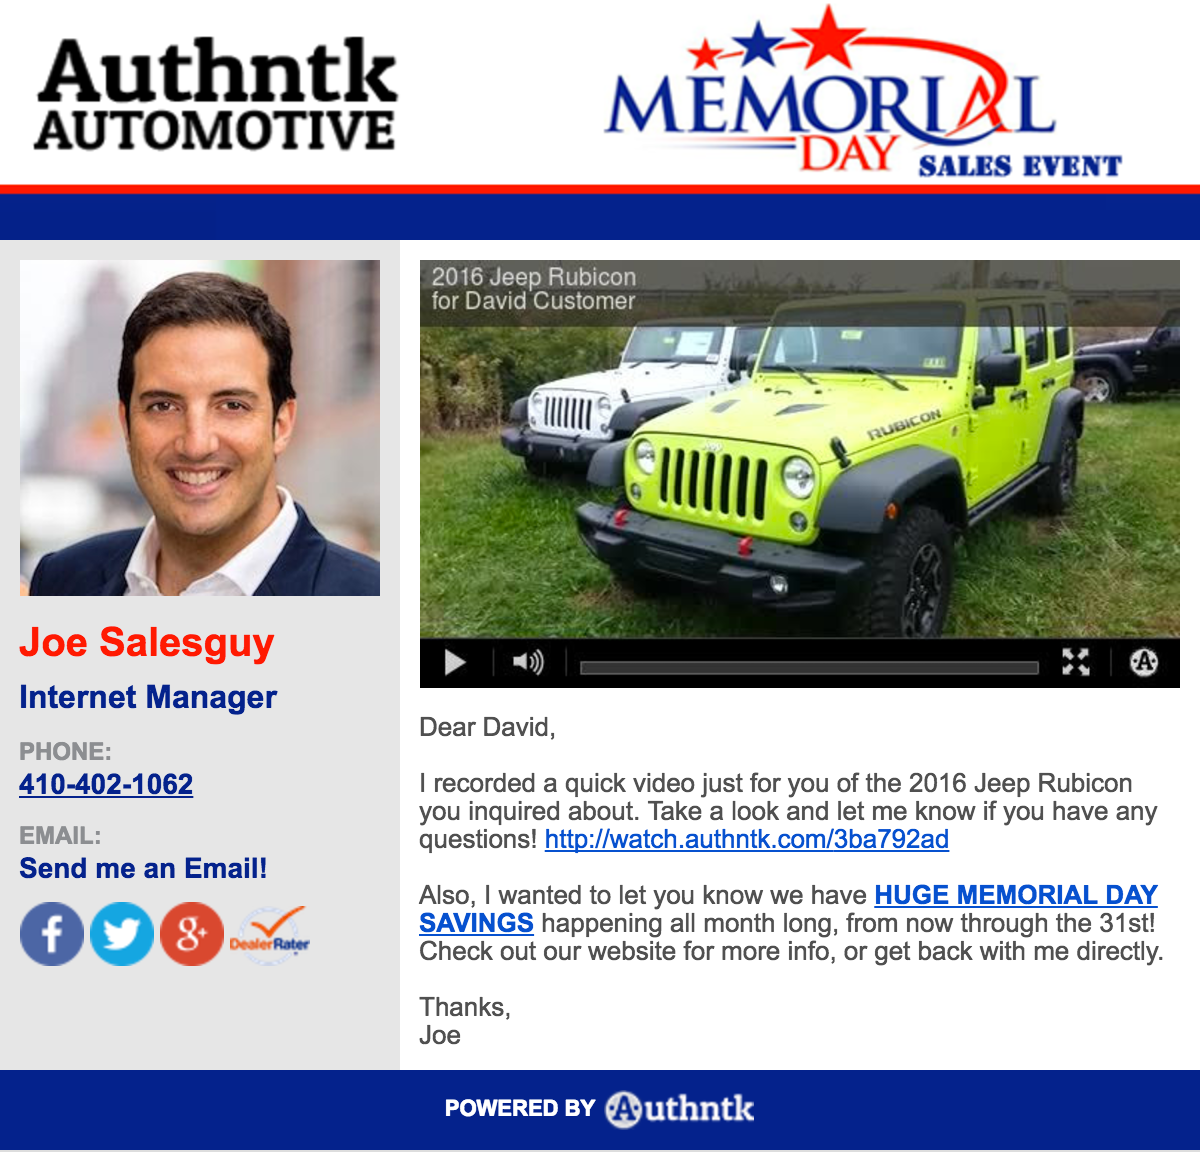 authntk-memorial-day-template